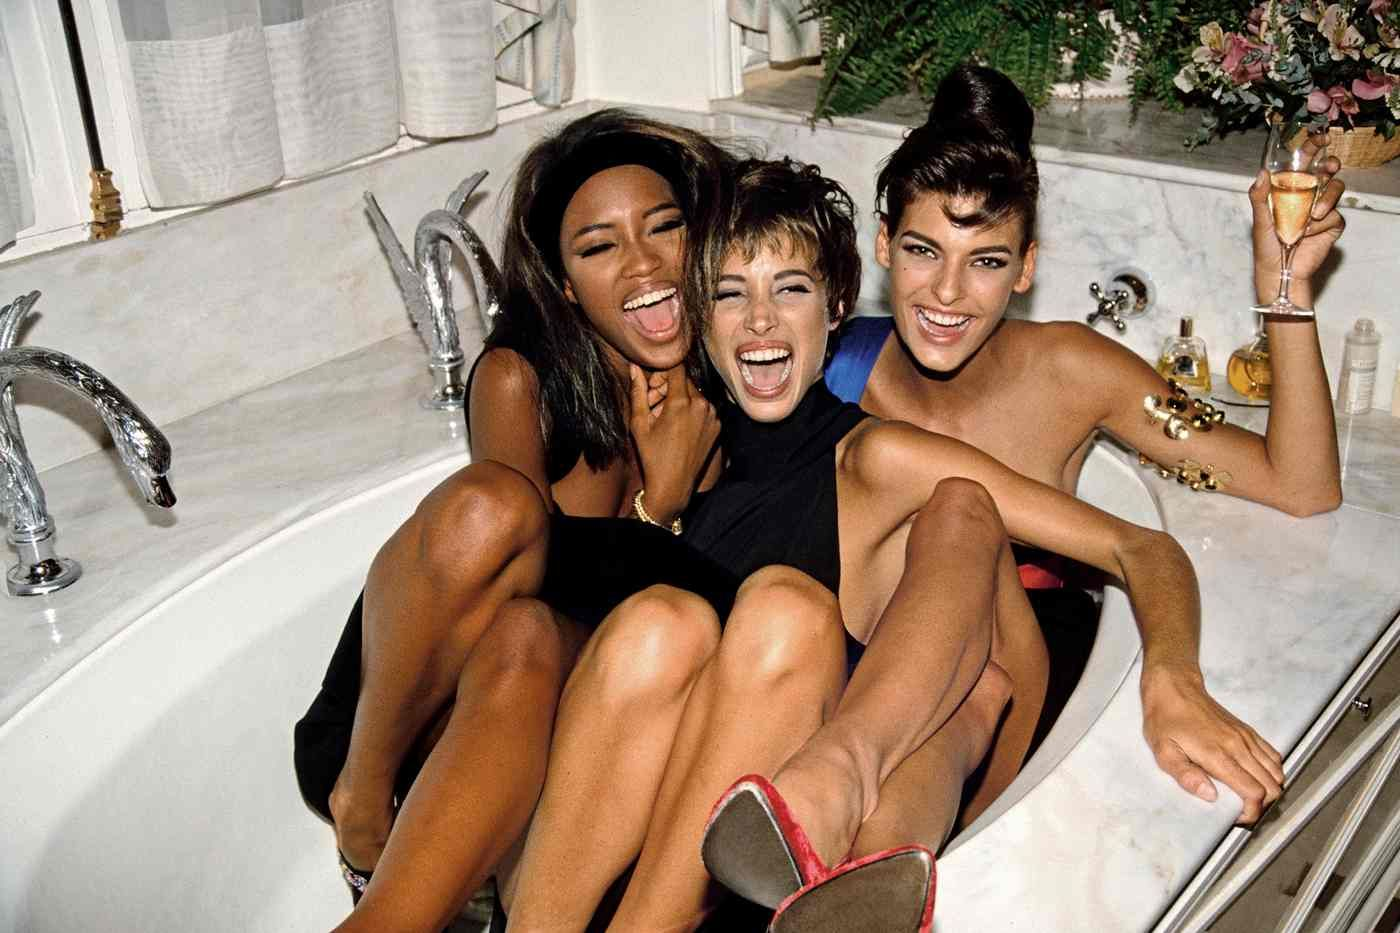 Nss 90s The Decades Most Iconic Models